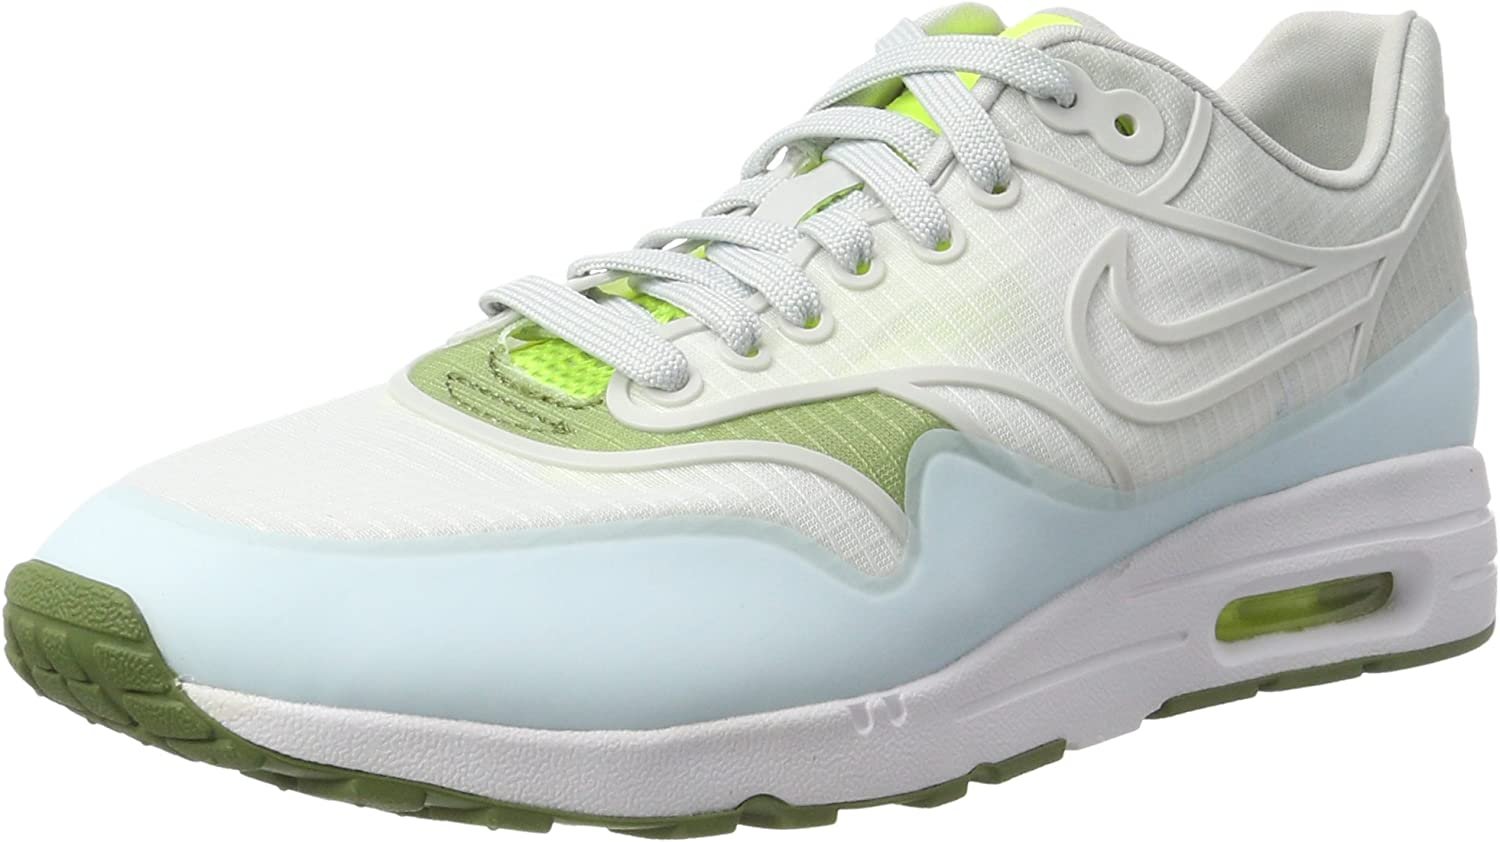 Nike Womens Air Max Fury Low Sneaker New product!! 84% OFF Lace Top Running Up